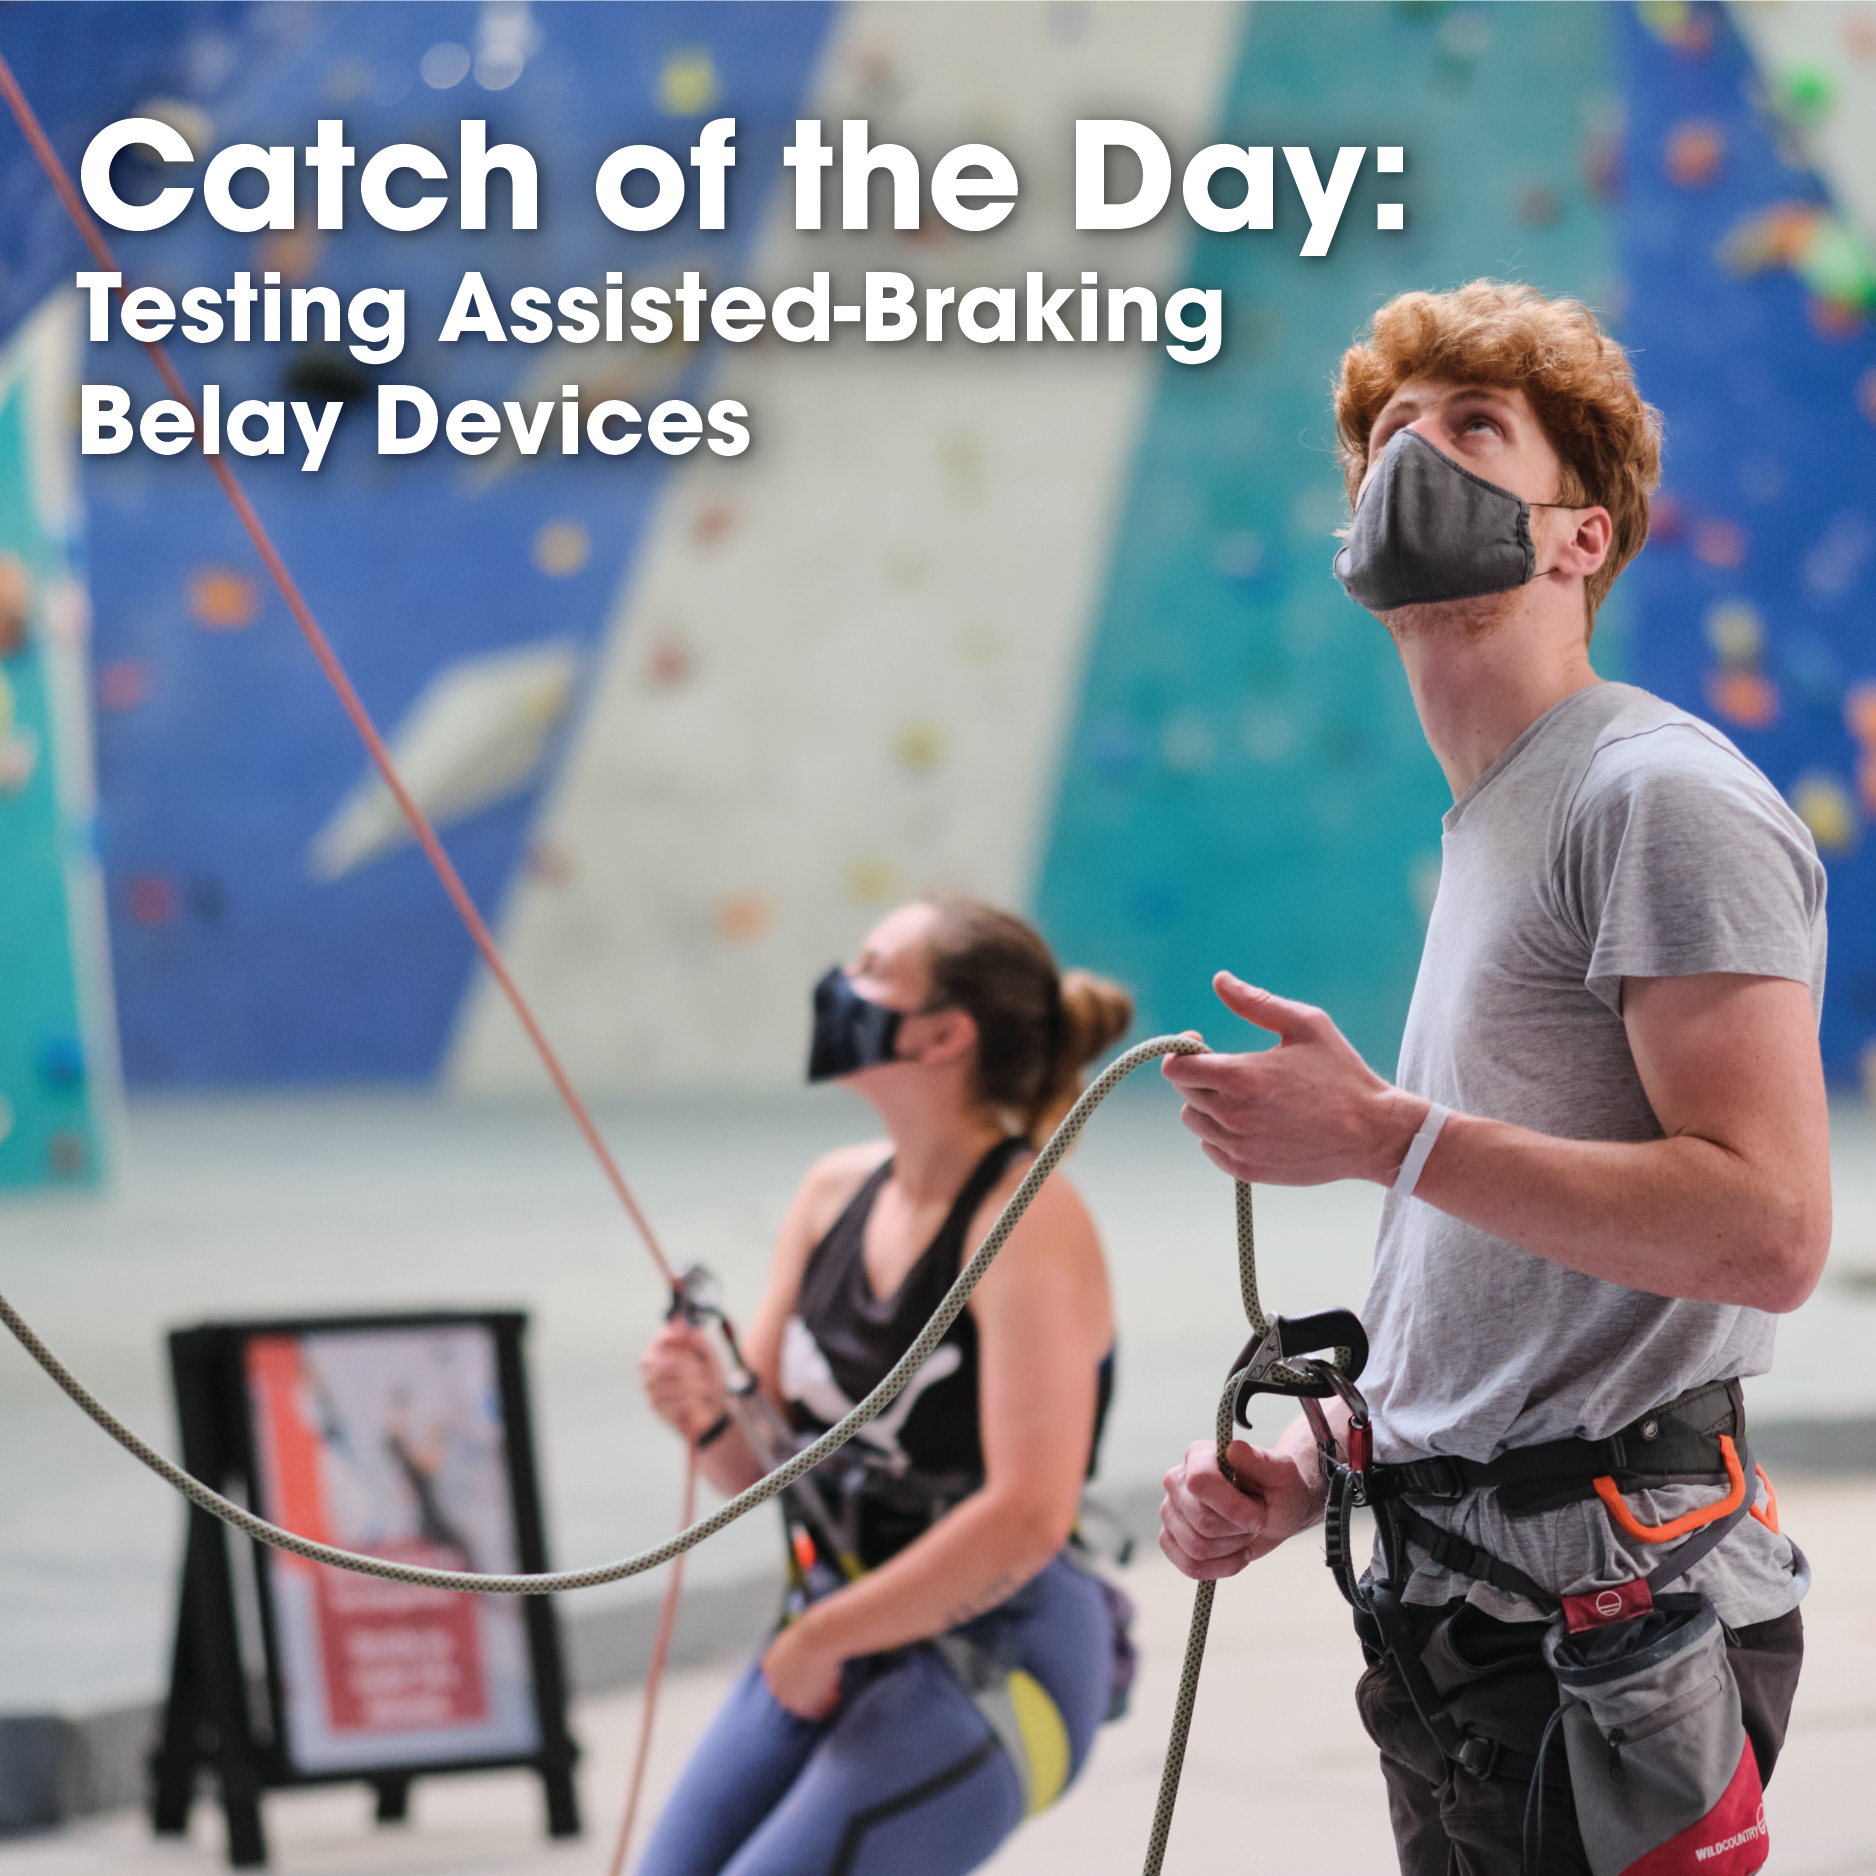 Catch of the Day: Testing Assisted-Braking Belay Devices